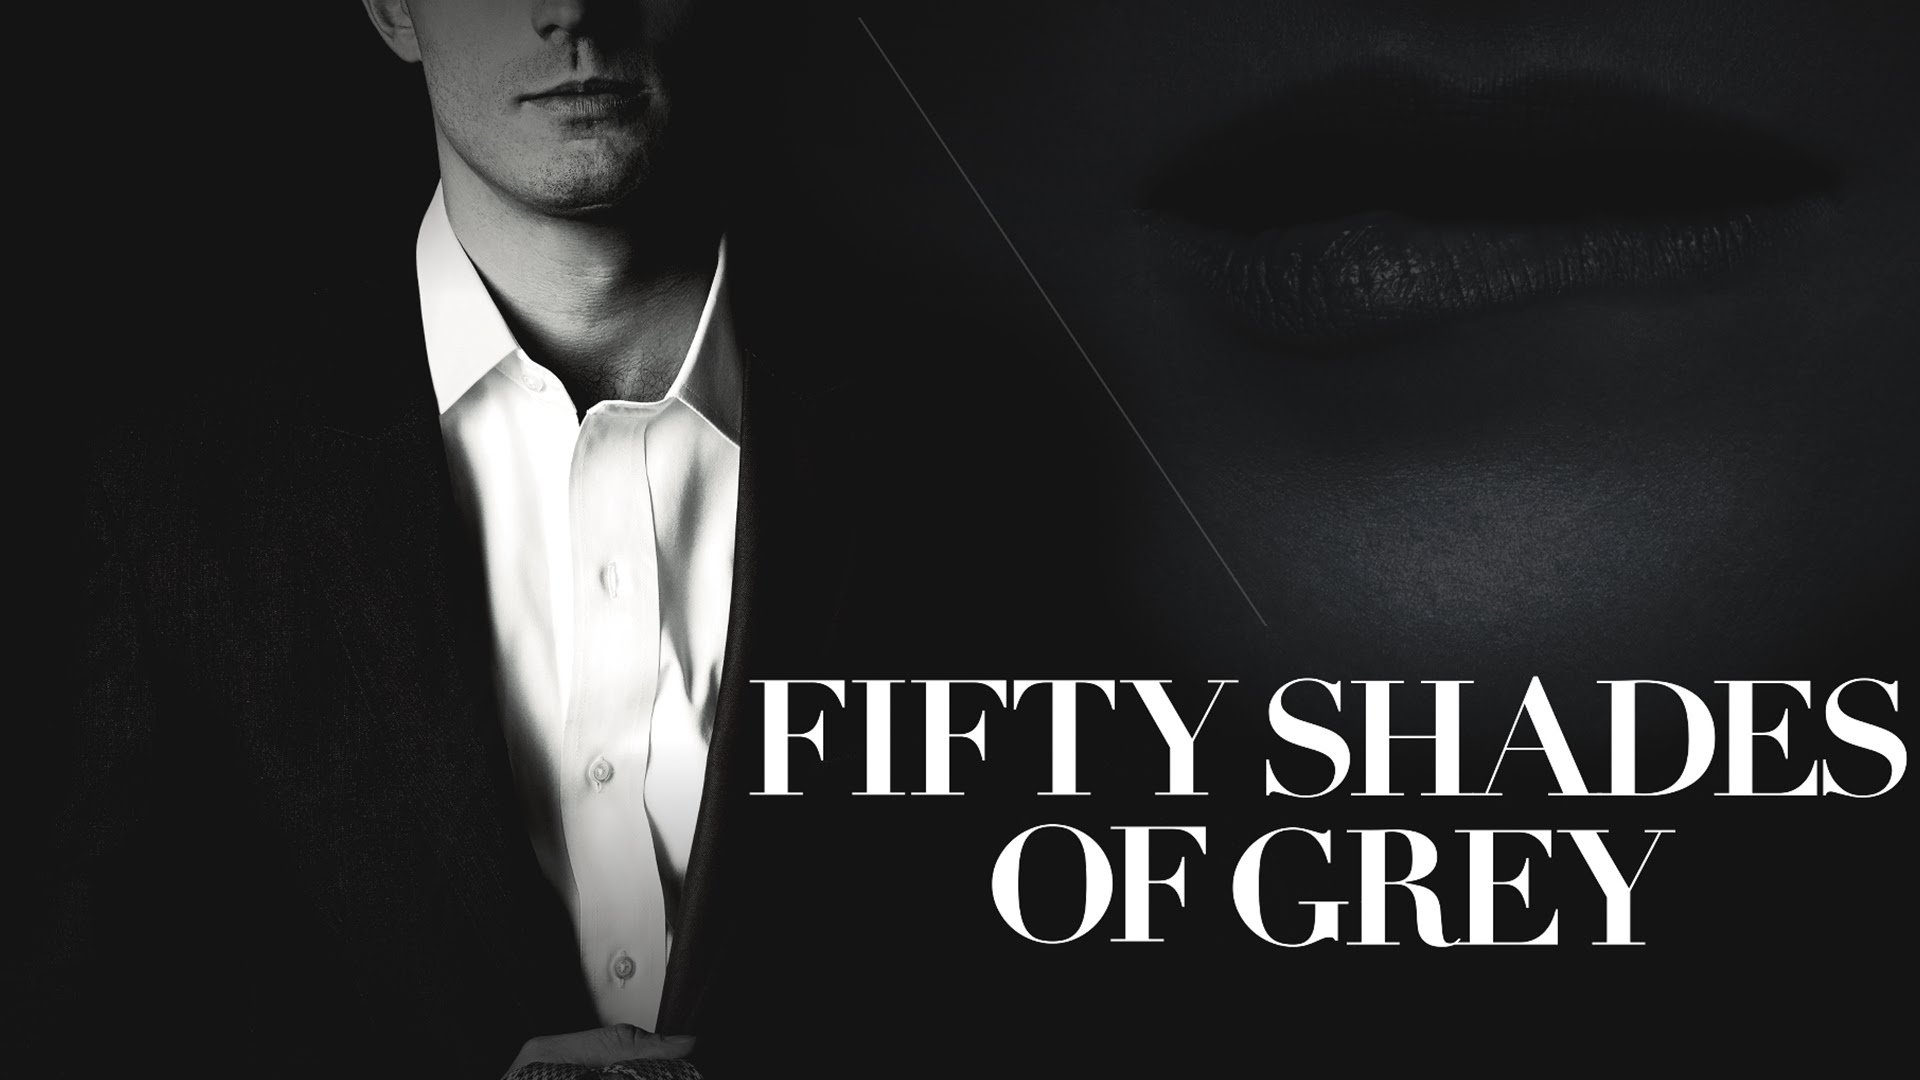 fifty shades of grey wallpaper 48753 1920x1080 px ~ hdwallsource